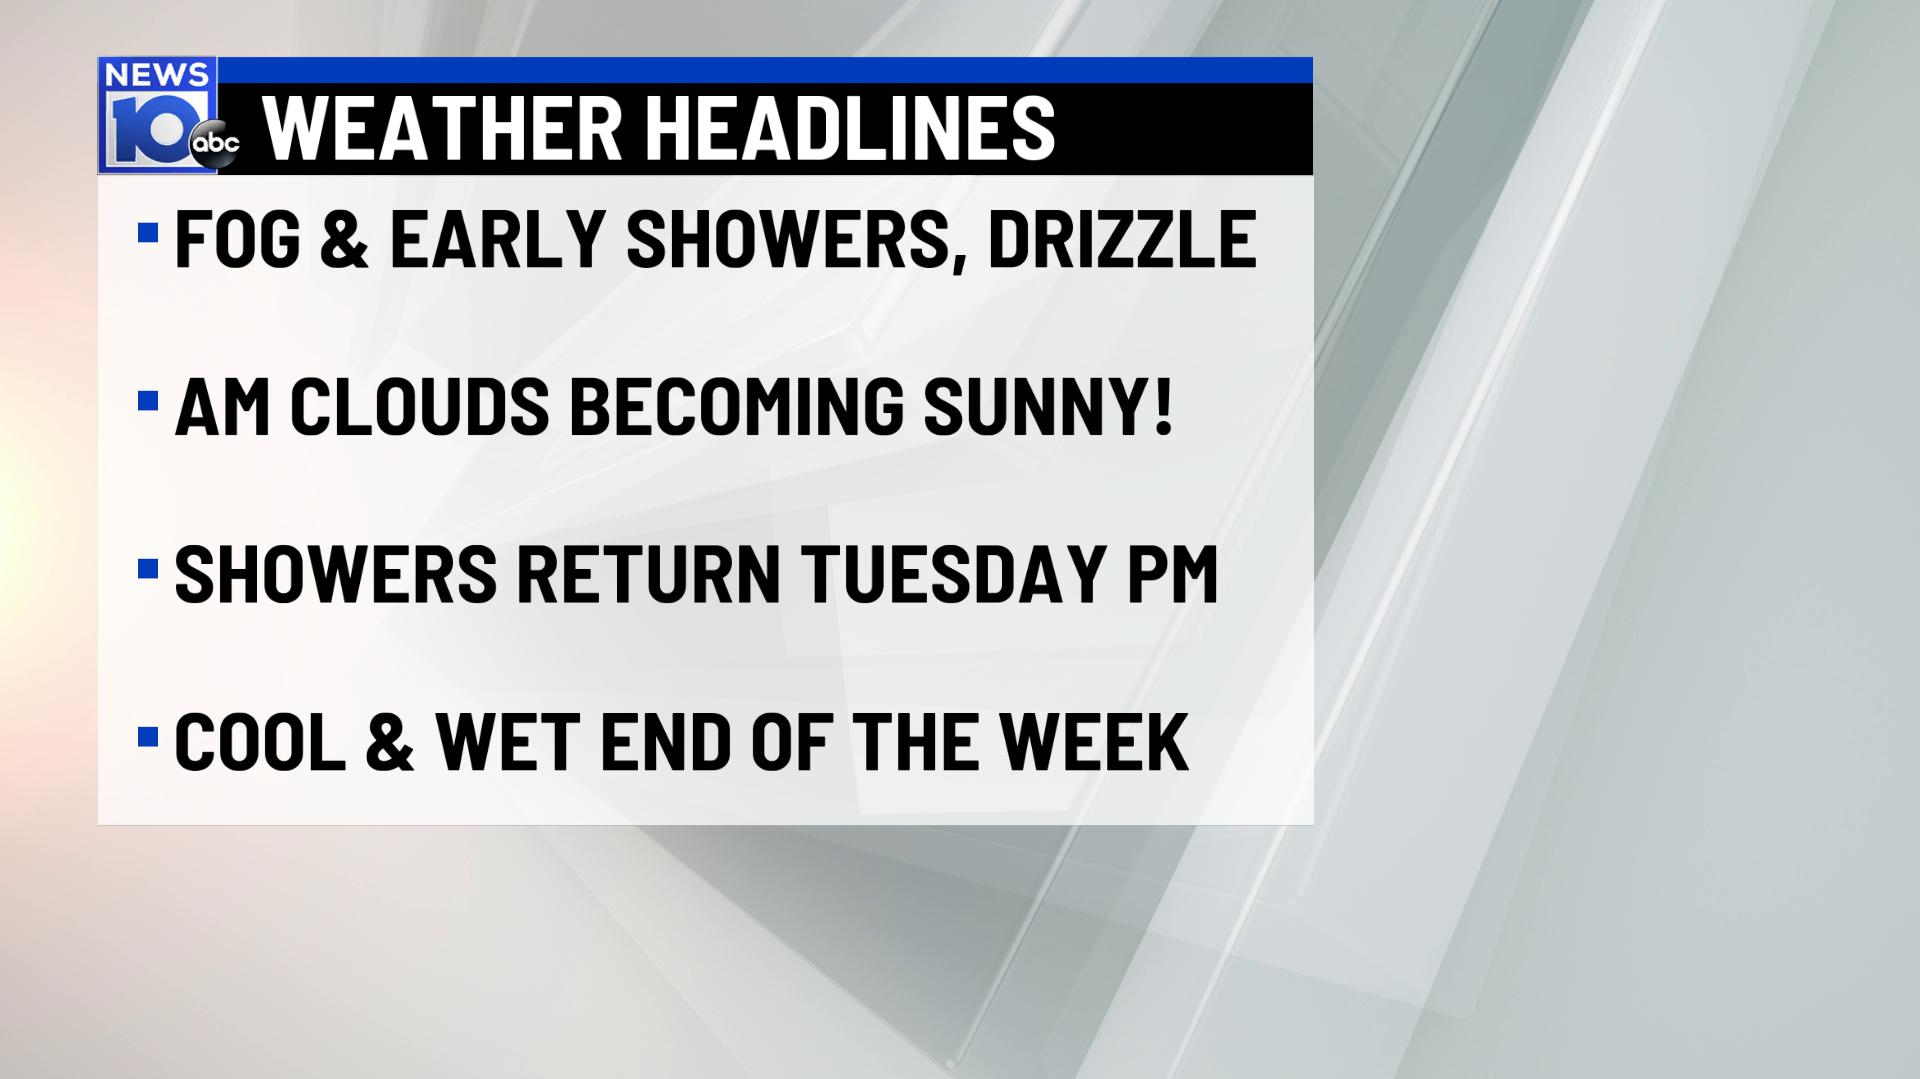 5/6/19: Early Fog, Showers/Drizzle & AM Clouds Becoming Sunny!